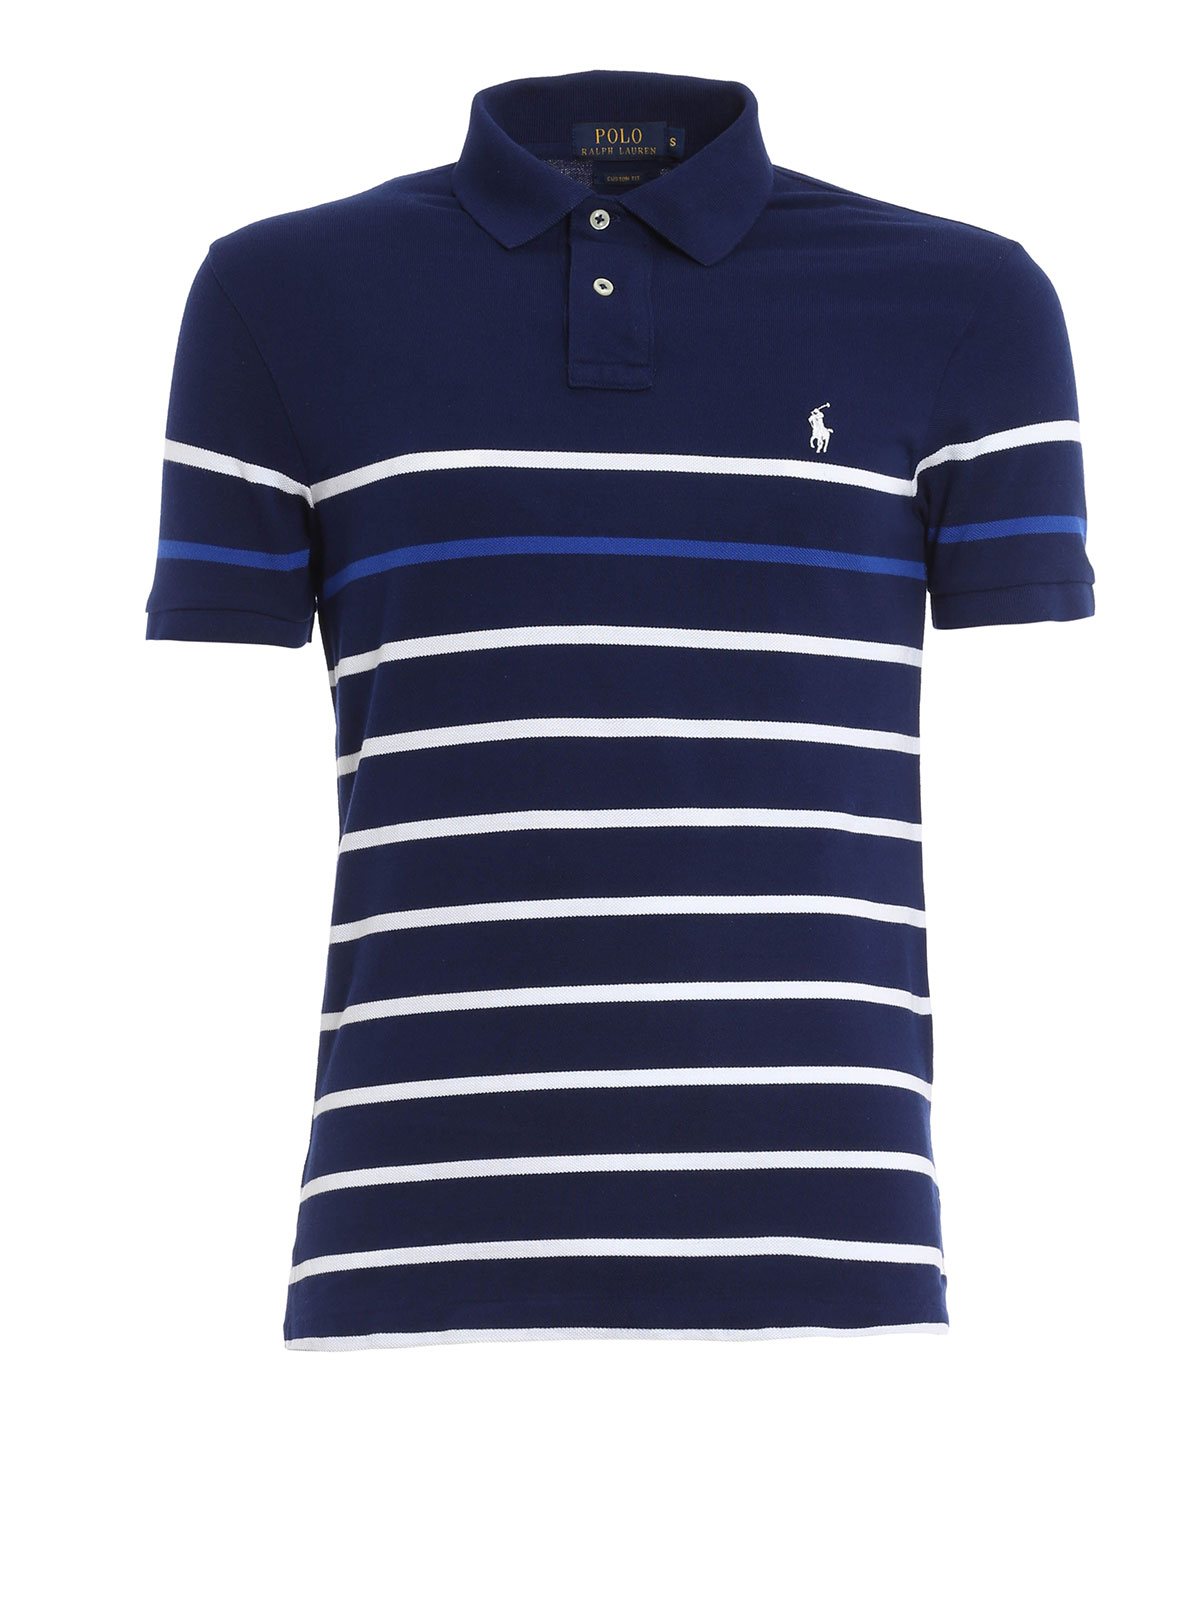 Free shipping BOTH ways on mens striped polo shirts, from our vast selection of styles. Fast delivery, and 24/7/ real-person service with a smile. Click or call